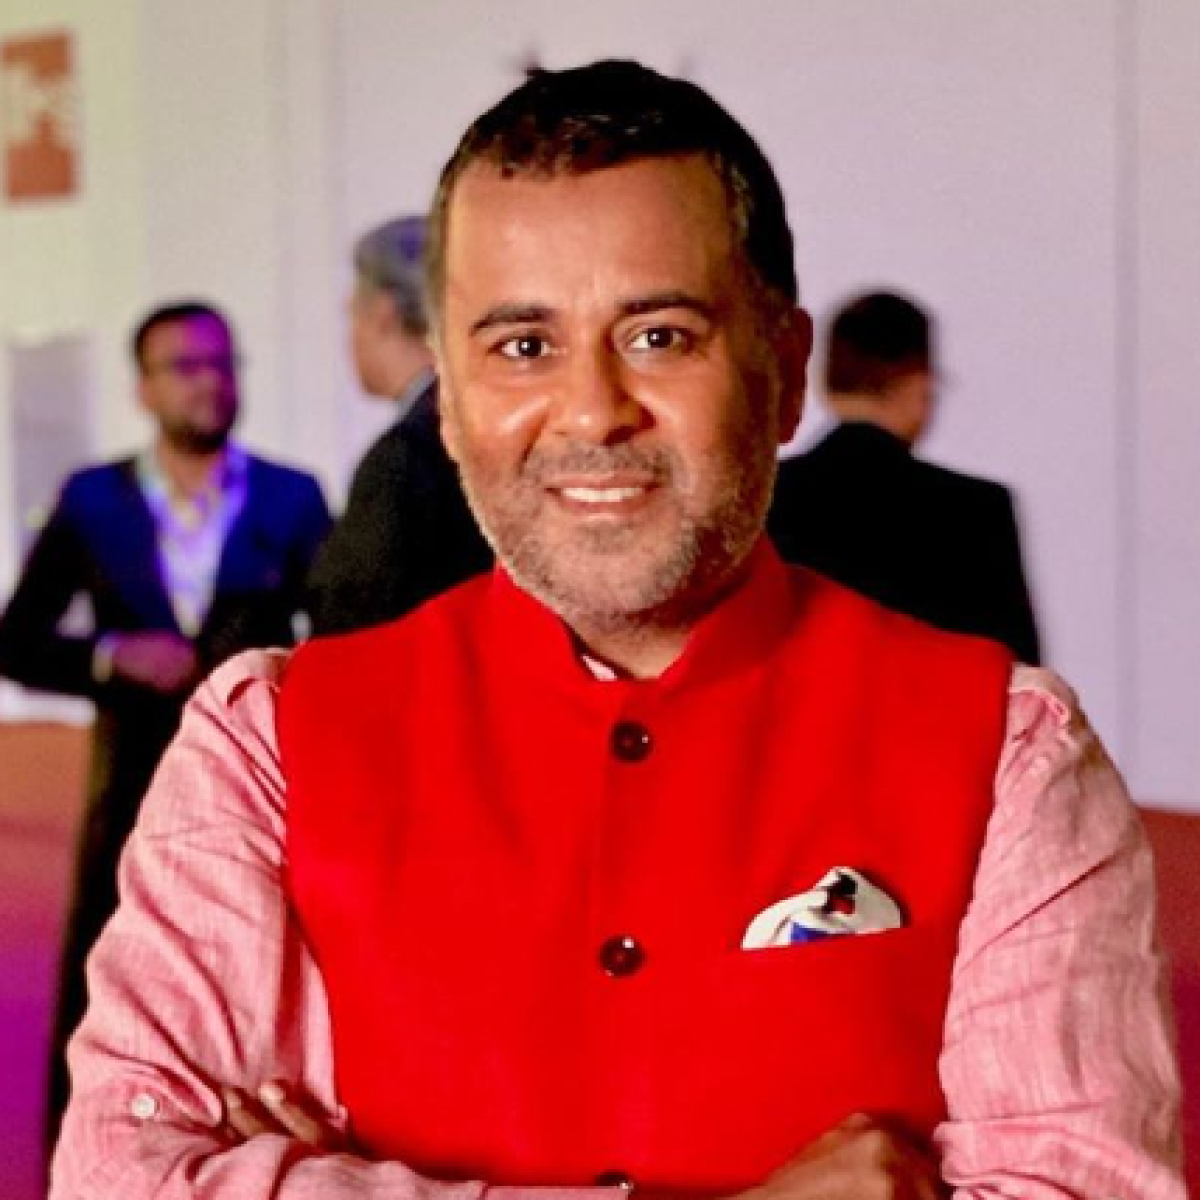 Author Chetan Bhagat called out for column asking people to be nice to China's Xi Jinping